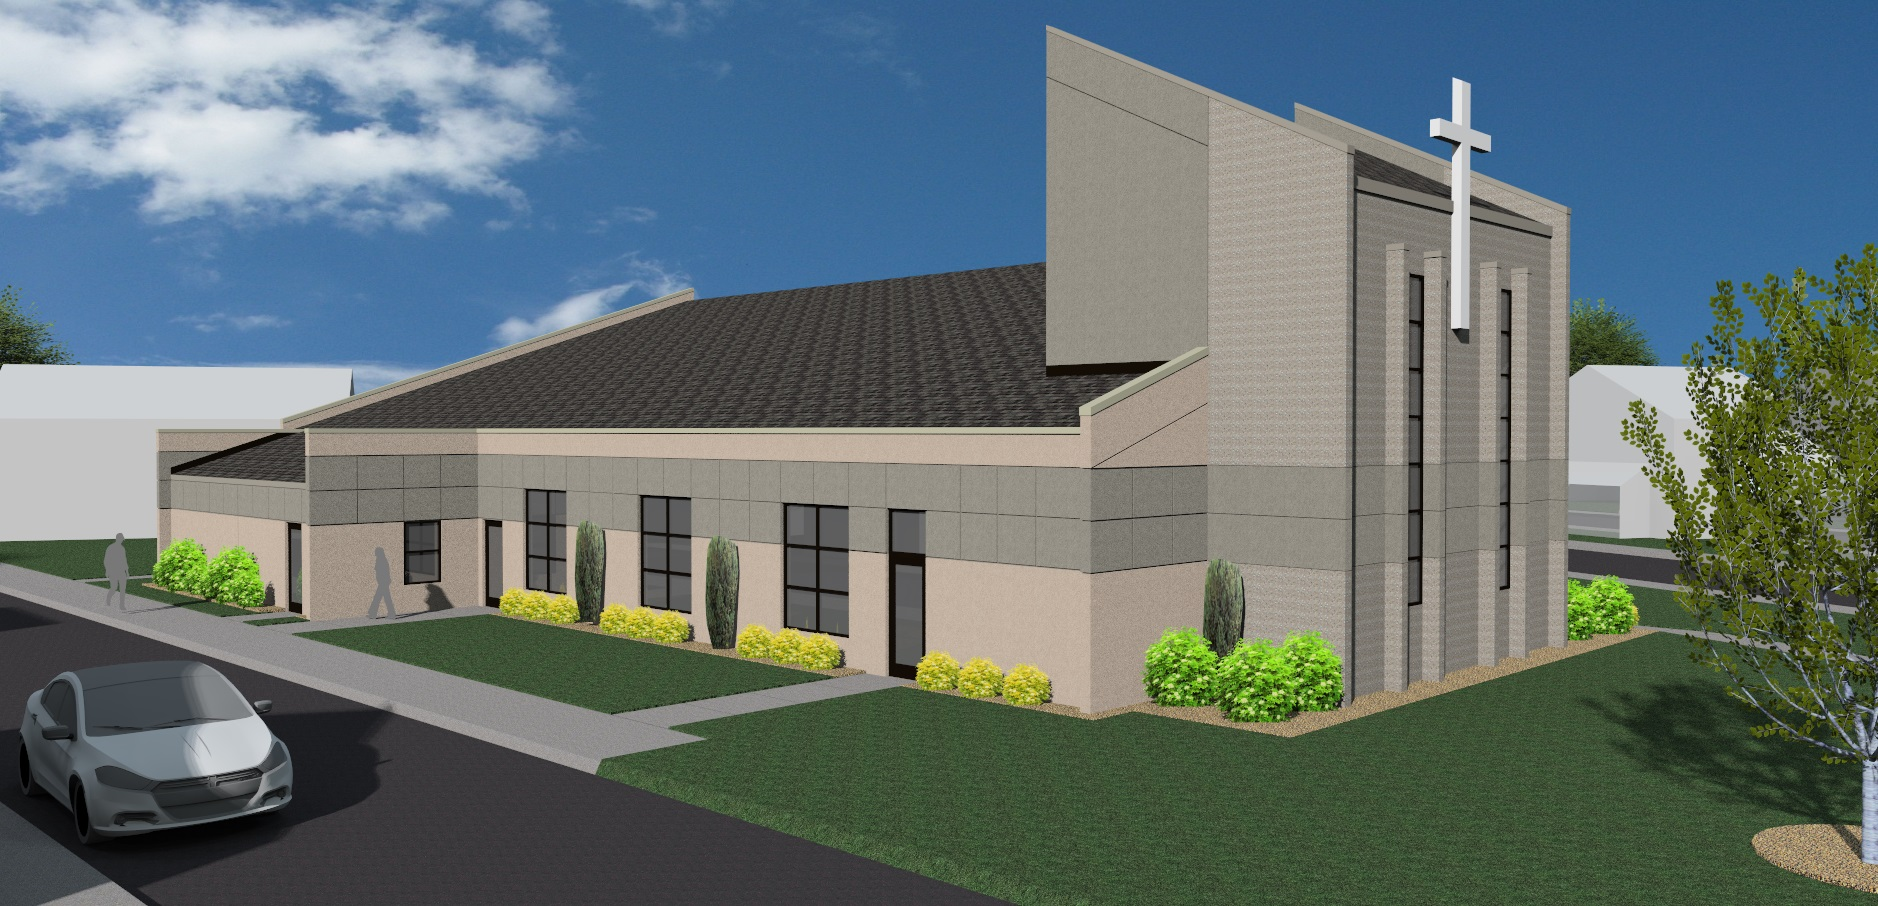 Miracle Church of God in Christ rendering